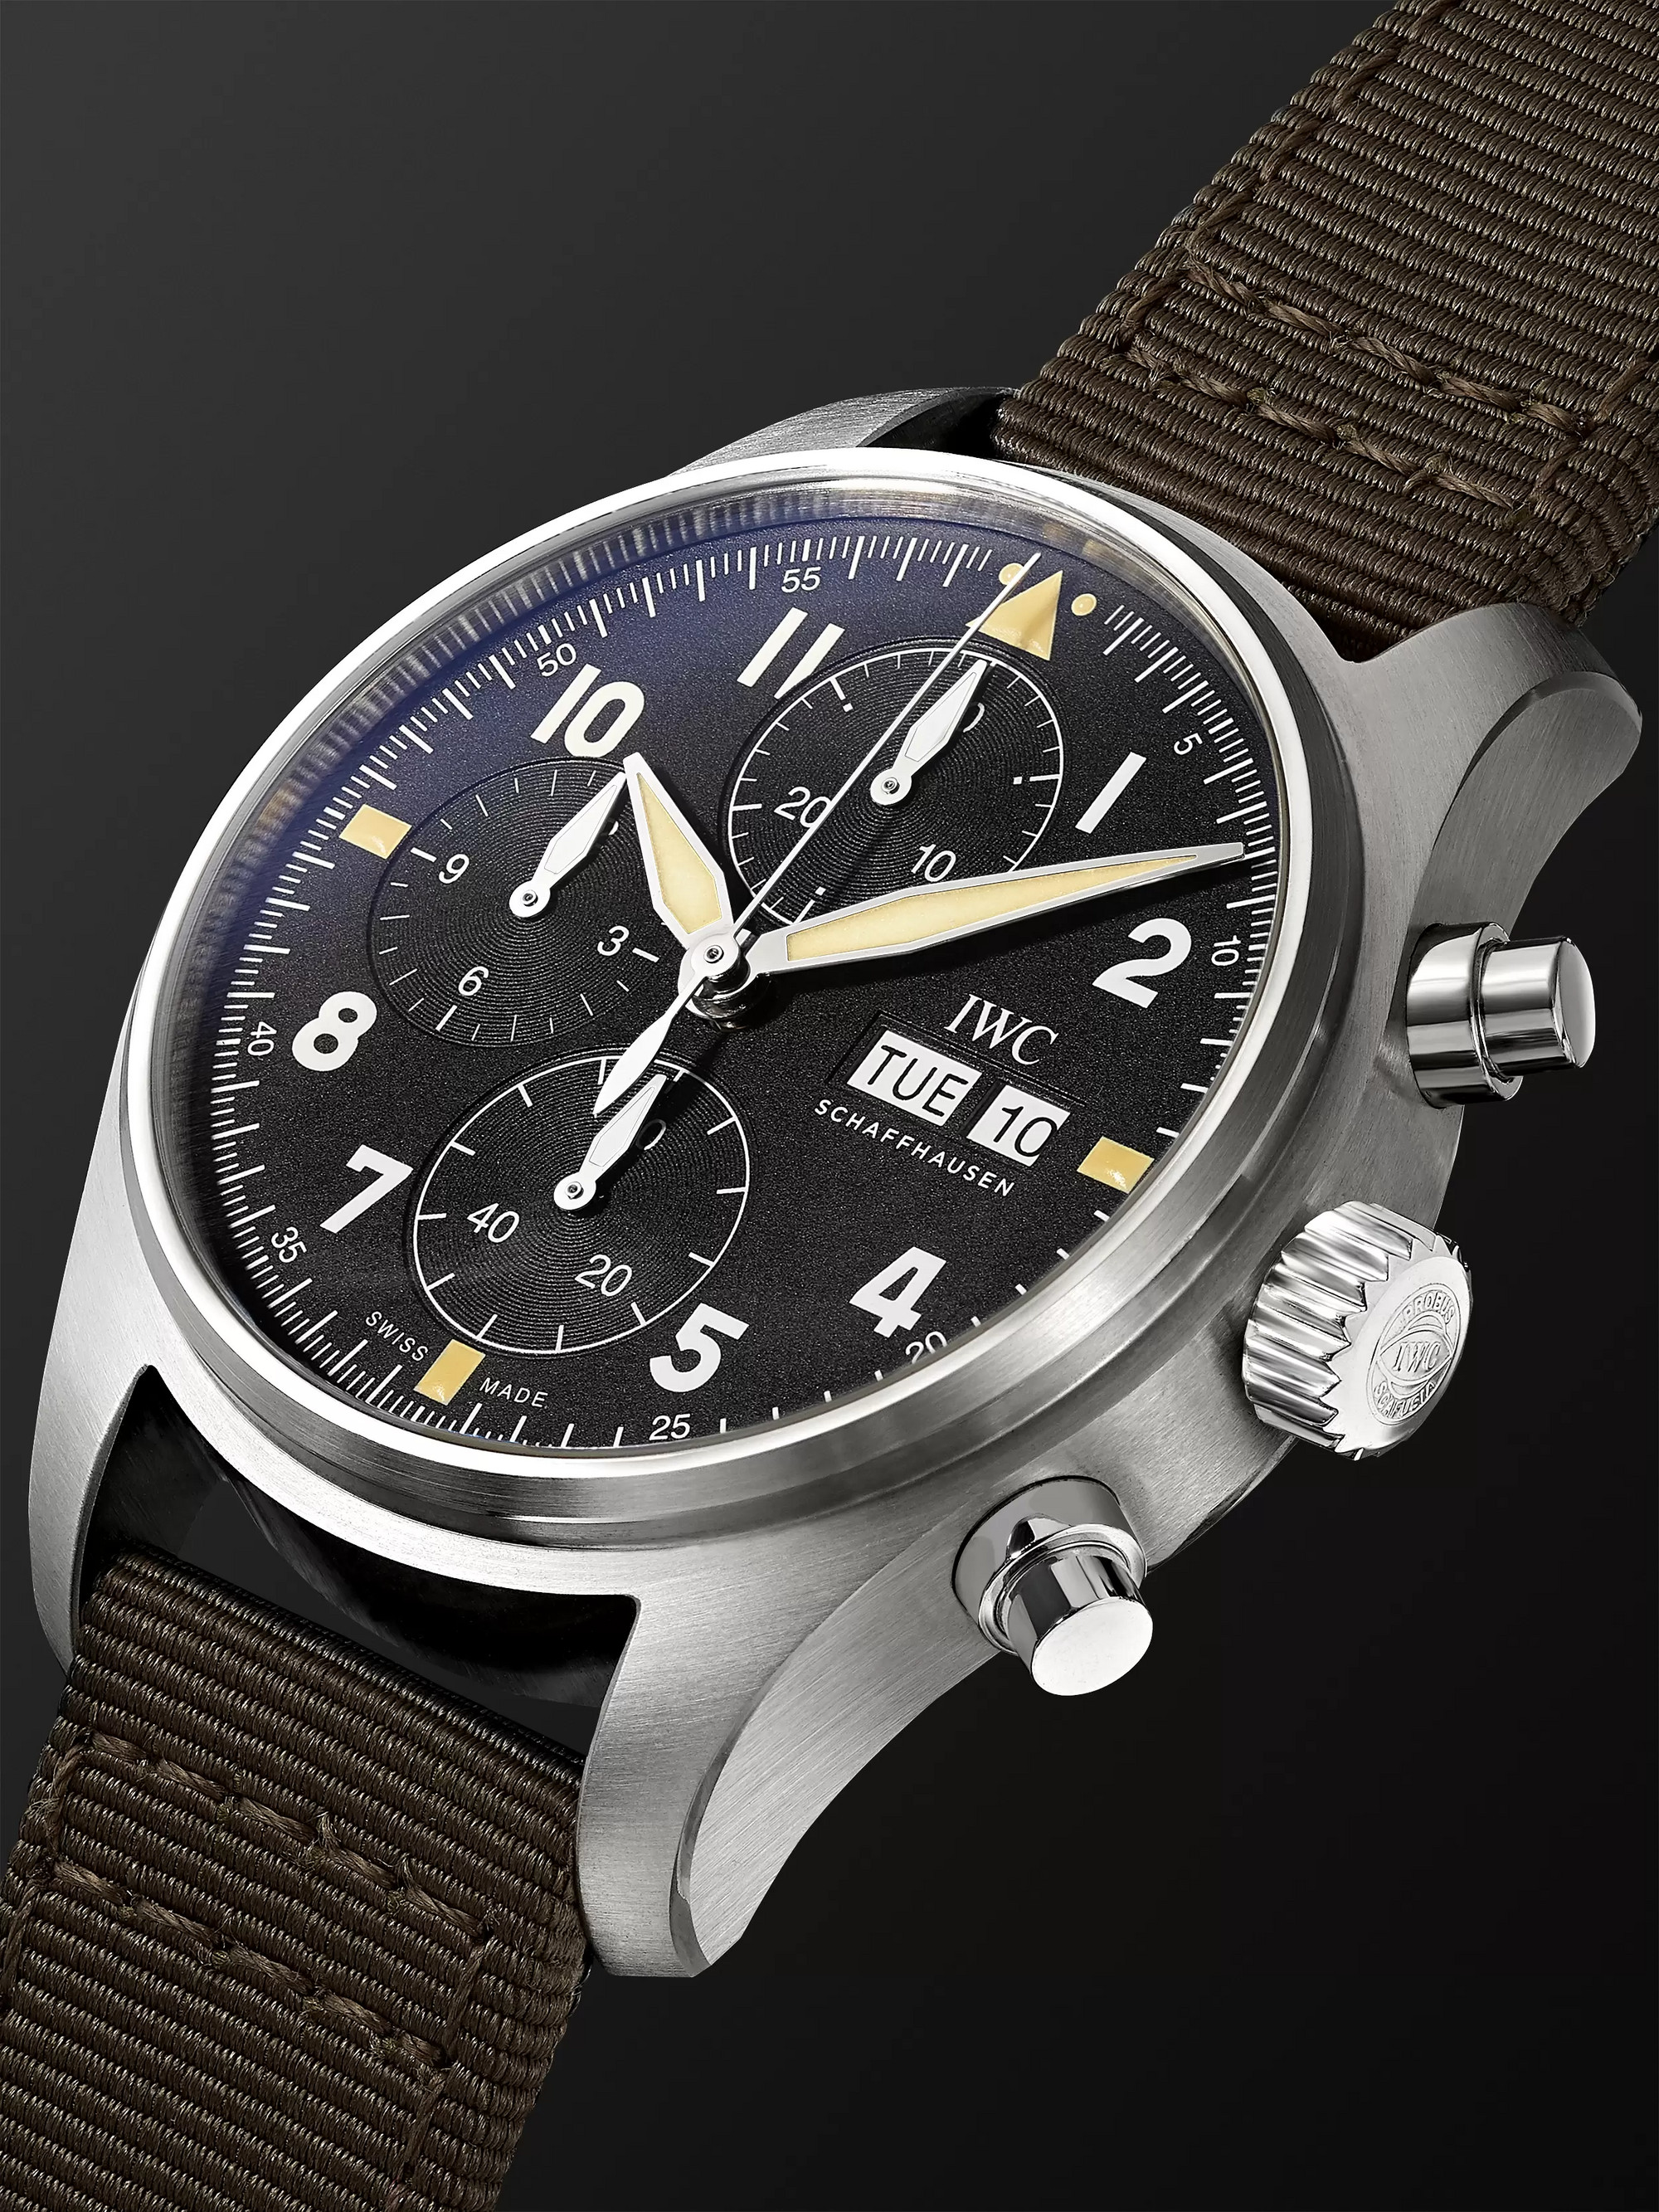 IWC SCHAFFHAUSEN Pilot's Spitfire Chronograph 41mm Stainless Steel and Webbing Watch